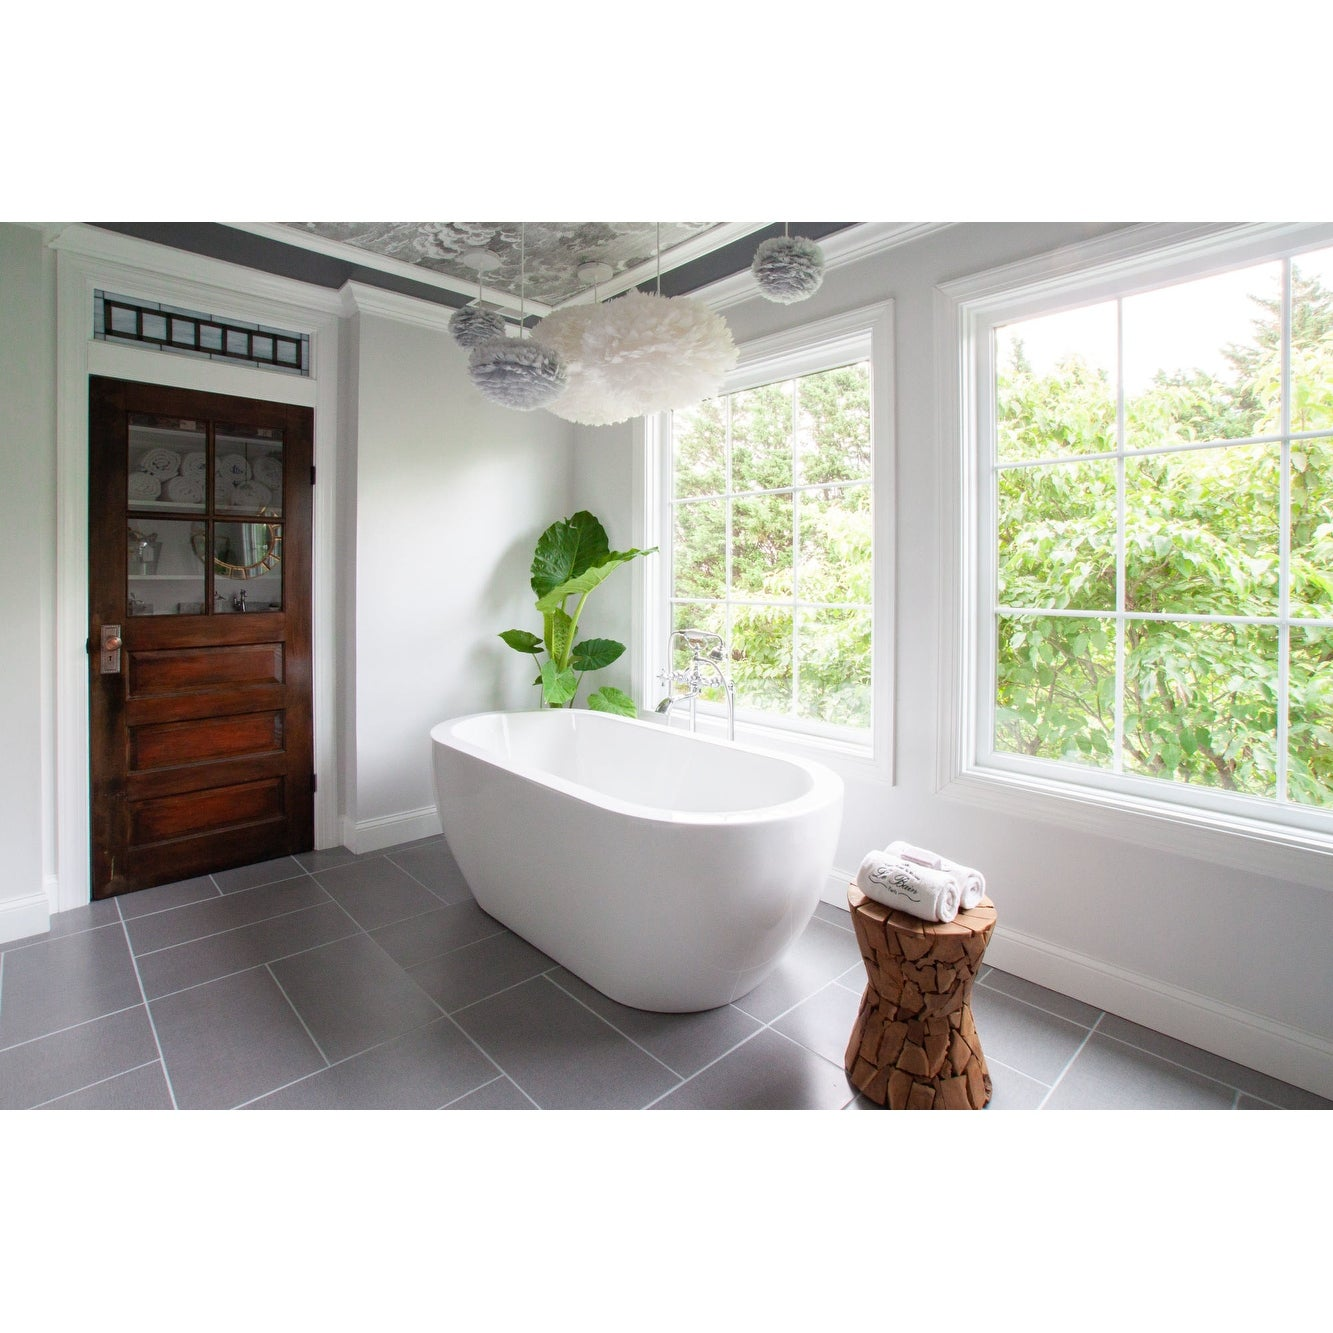 Moen S22110 Weymouth Wall Mounted Clawfoot Tub Filler With Built In Diverter Lever Handles And Hand Shower Risers And